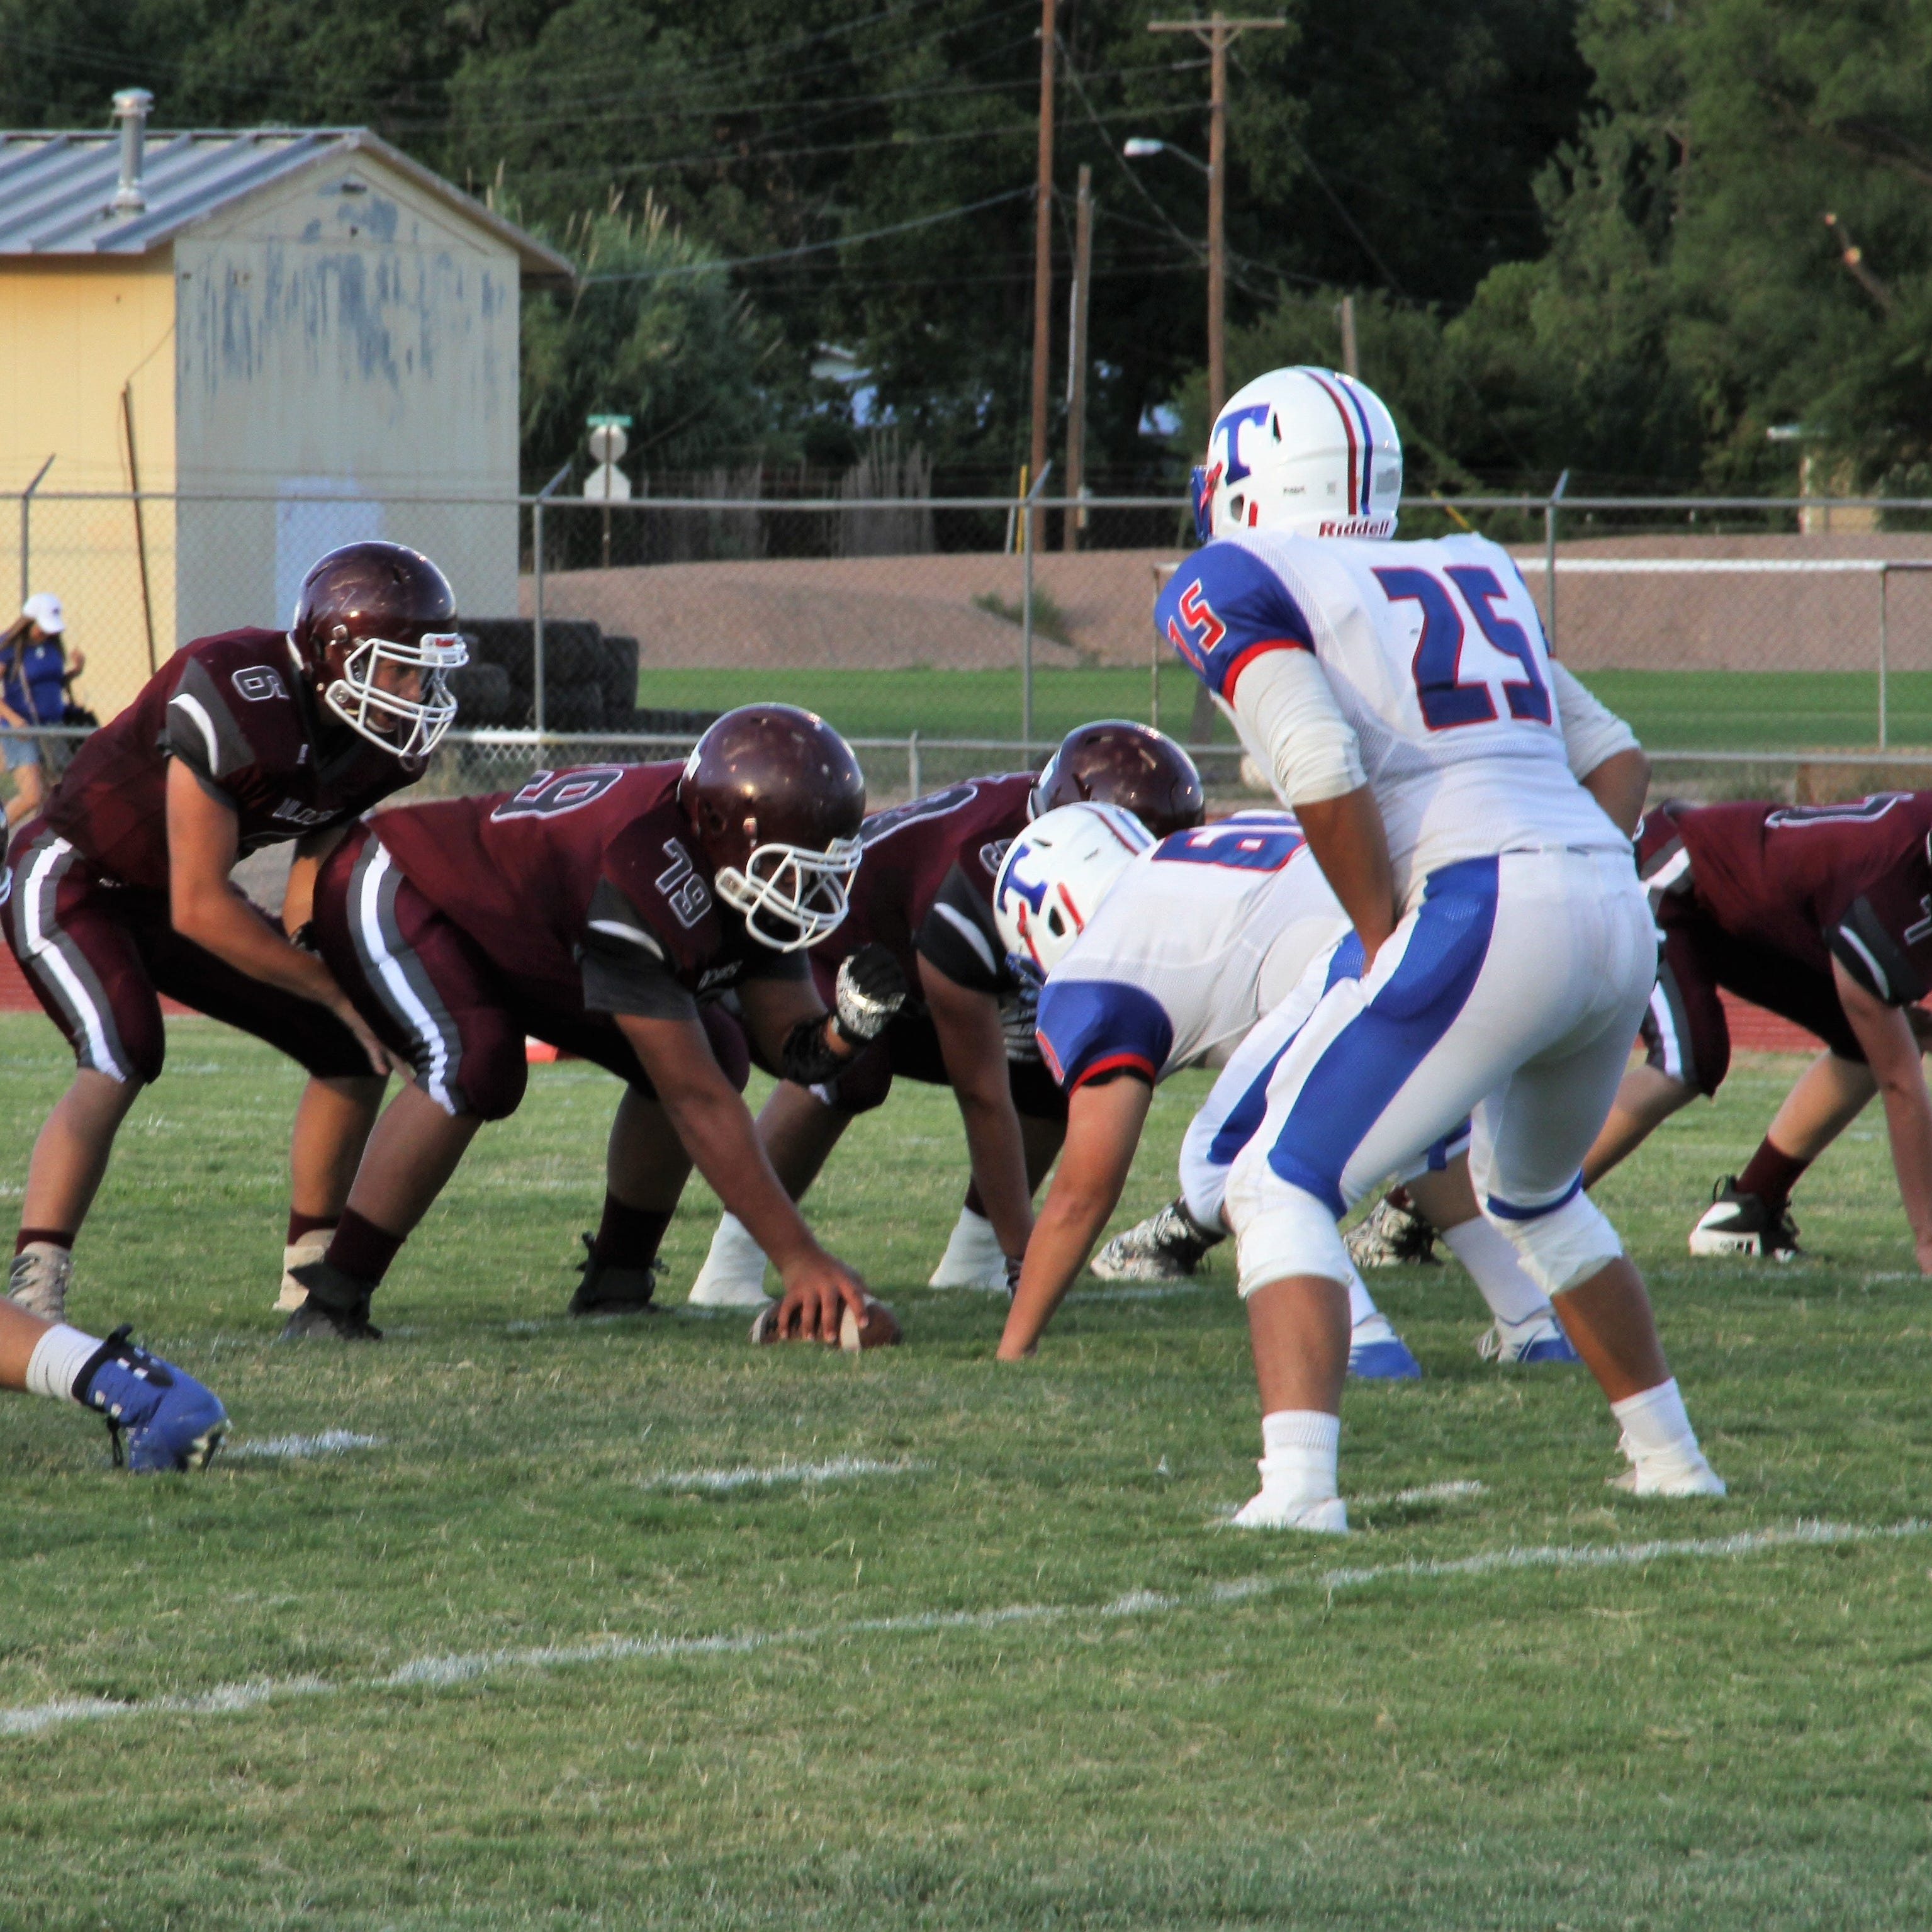 Tularosa wins 24-22 in season opener